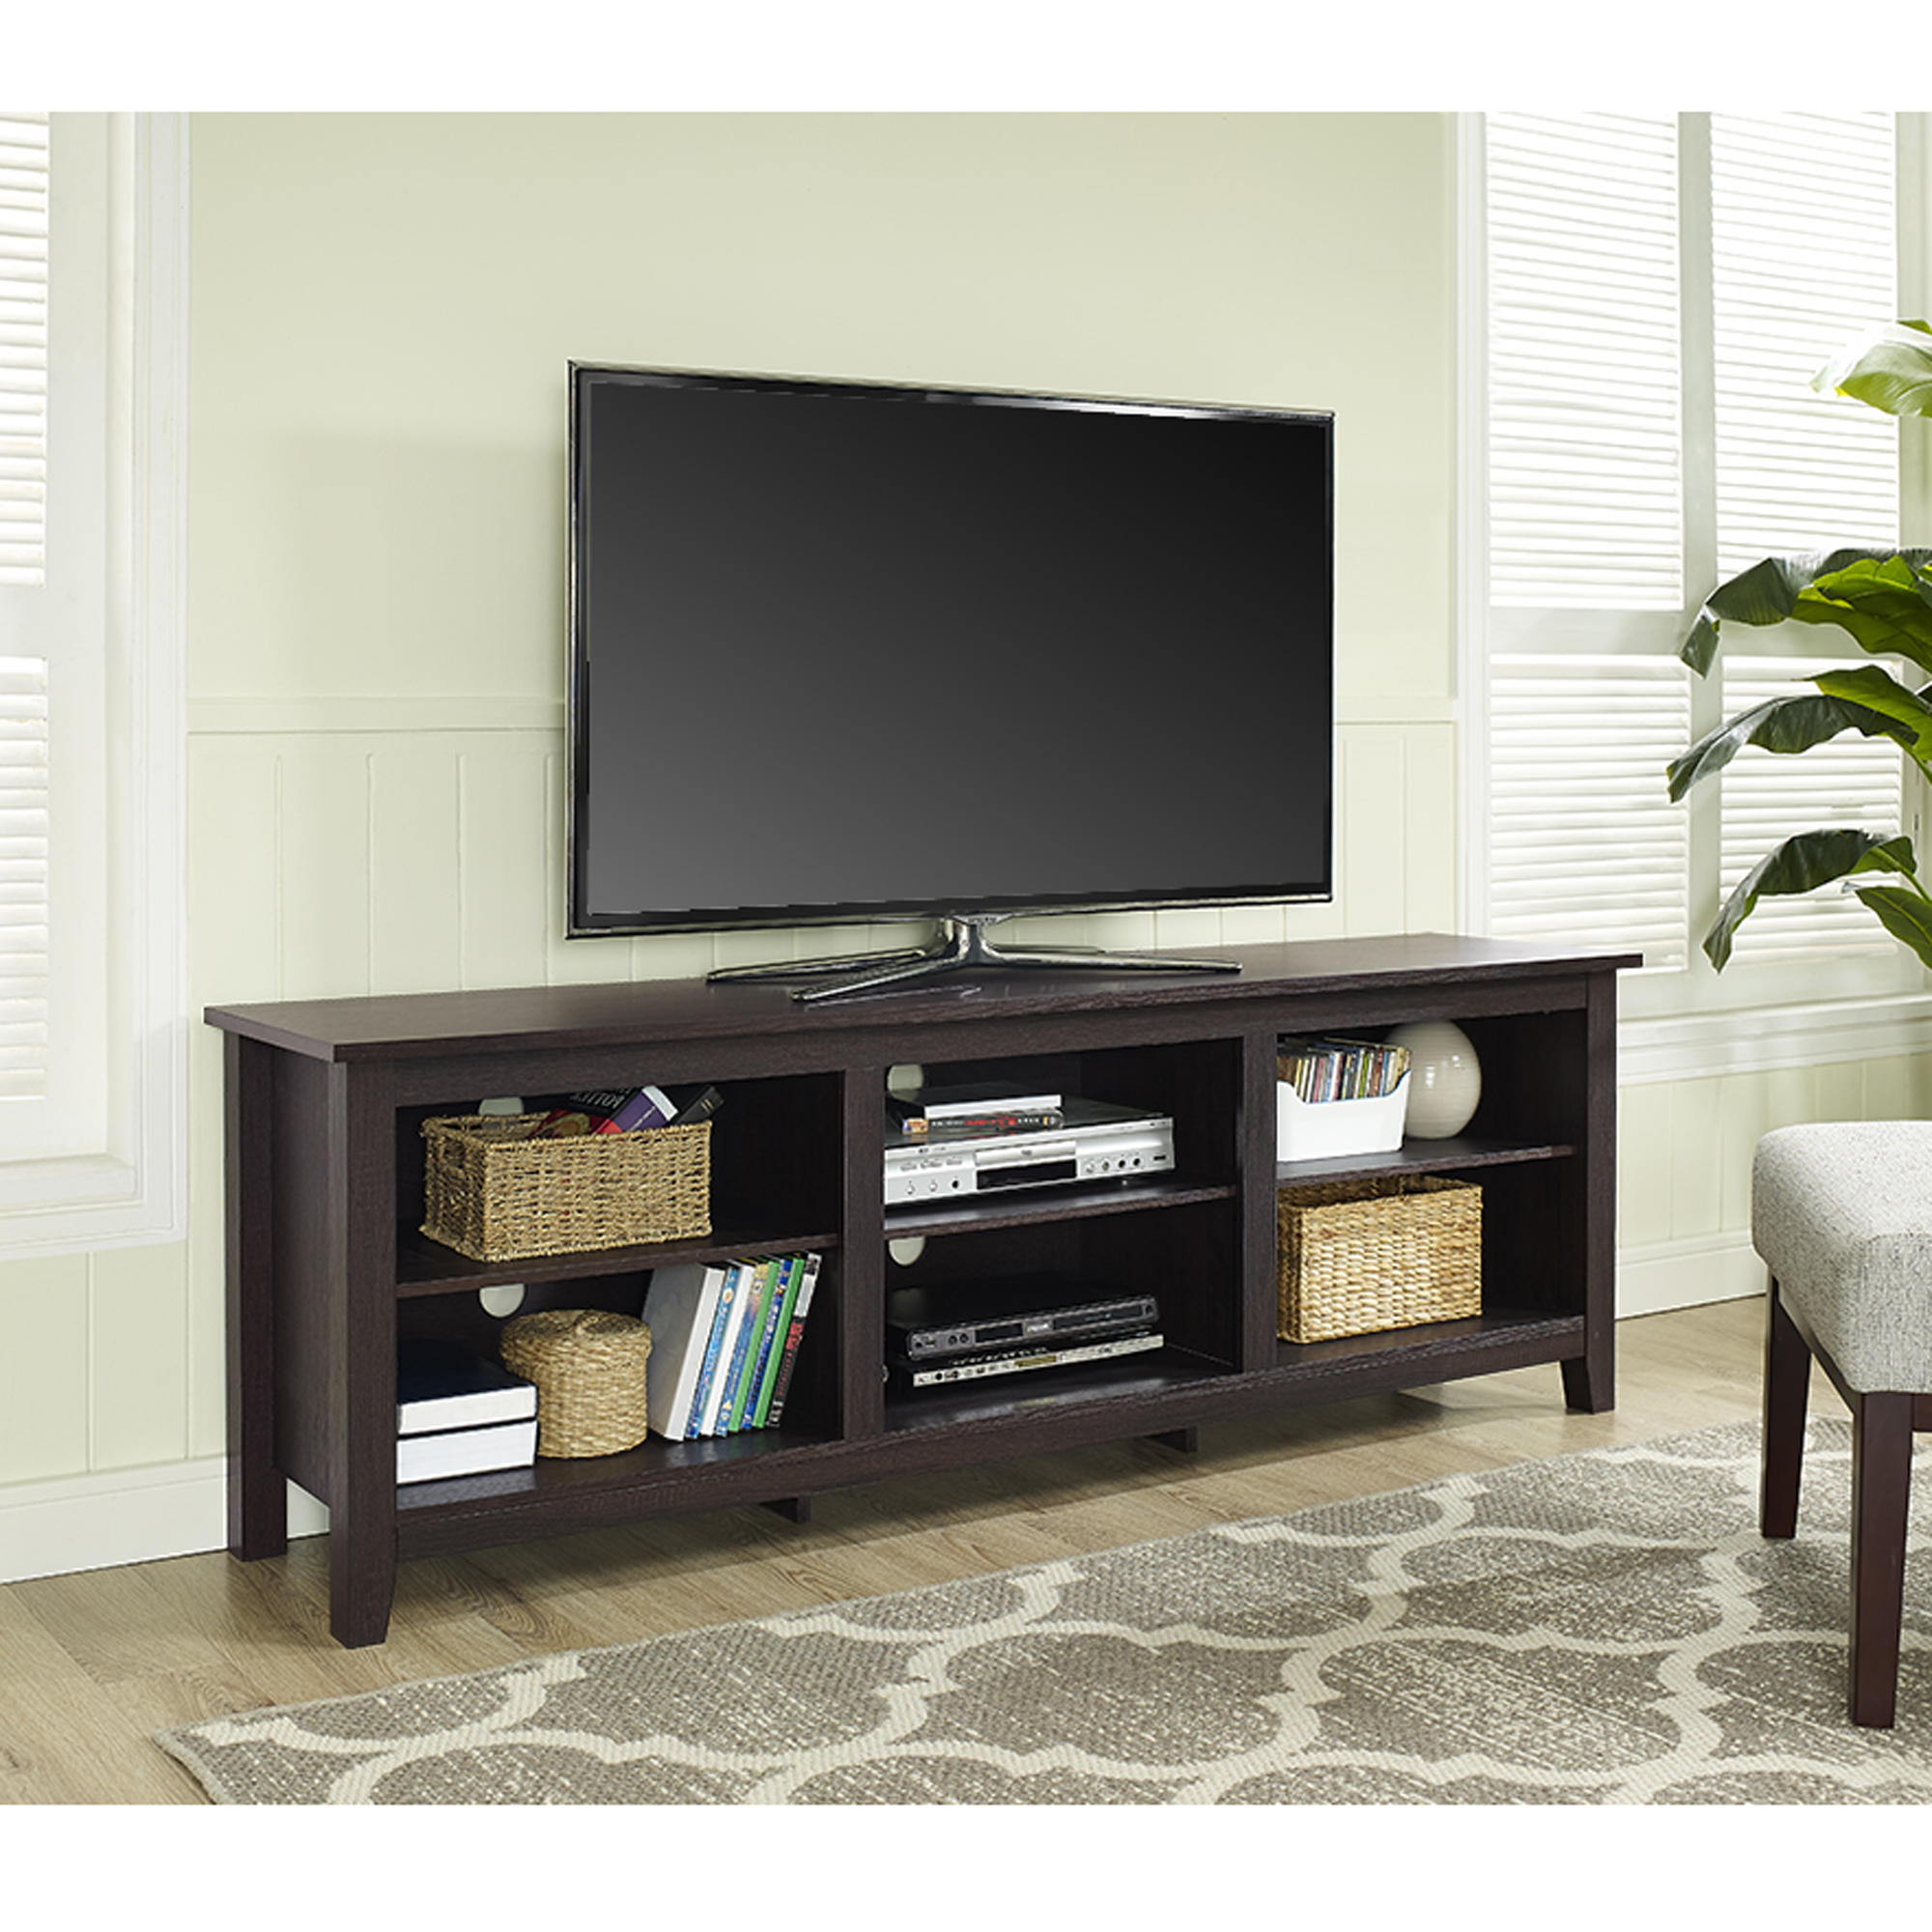 24 Inch Led Tv Stands Within Most Recent Tv Stand Clearance Black 55 Inch Big Lots Stands Target Small With (View 5 of 20)